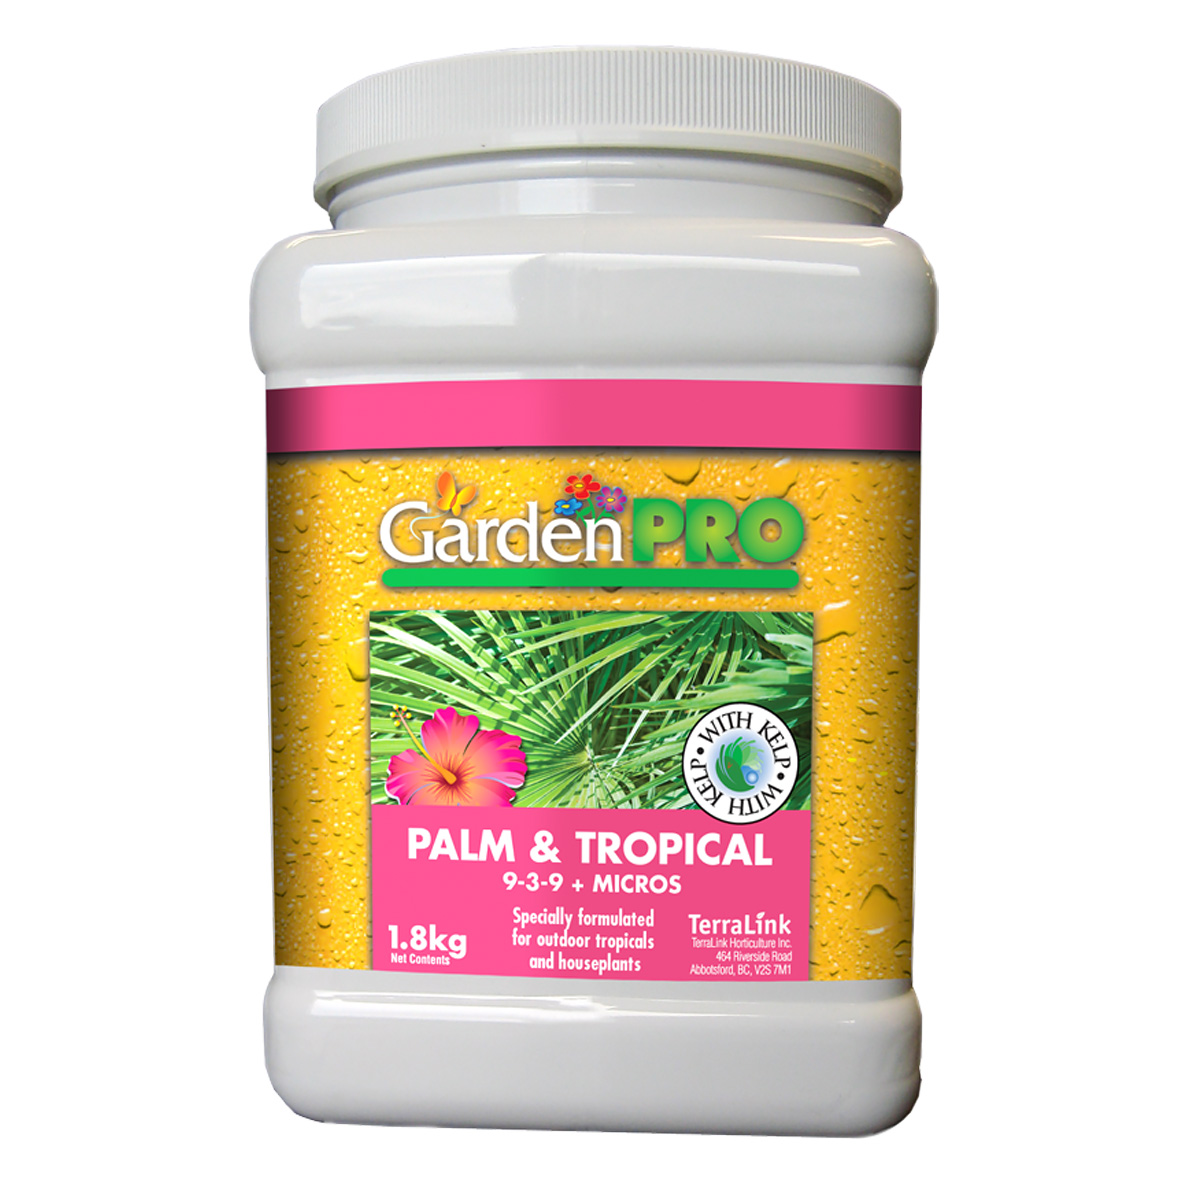 Garden Pro Palm and Tropical Fertilizer 9-3-9